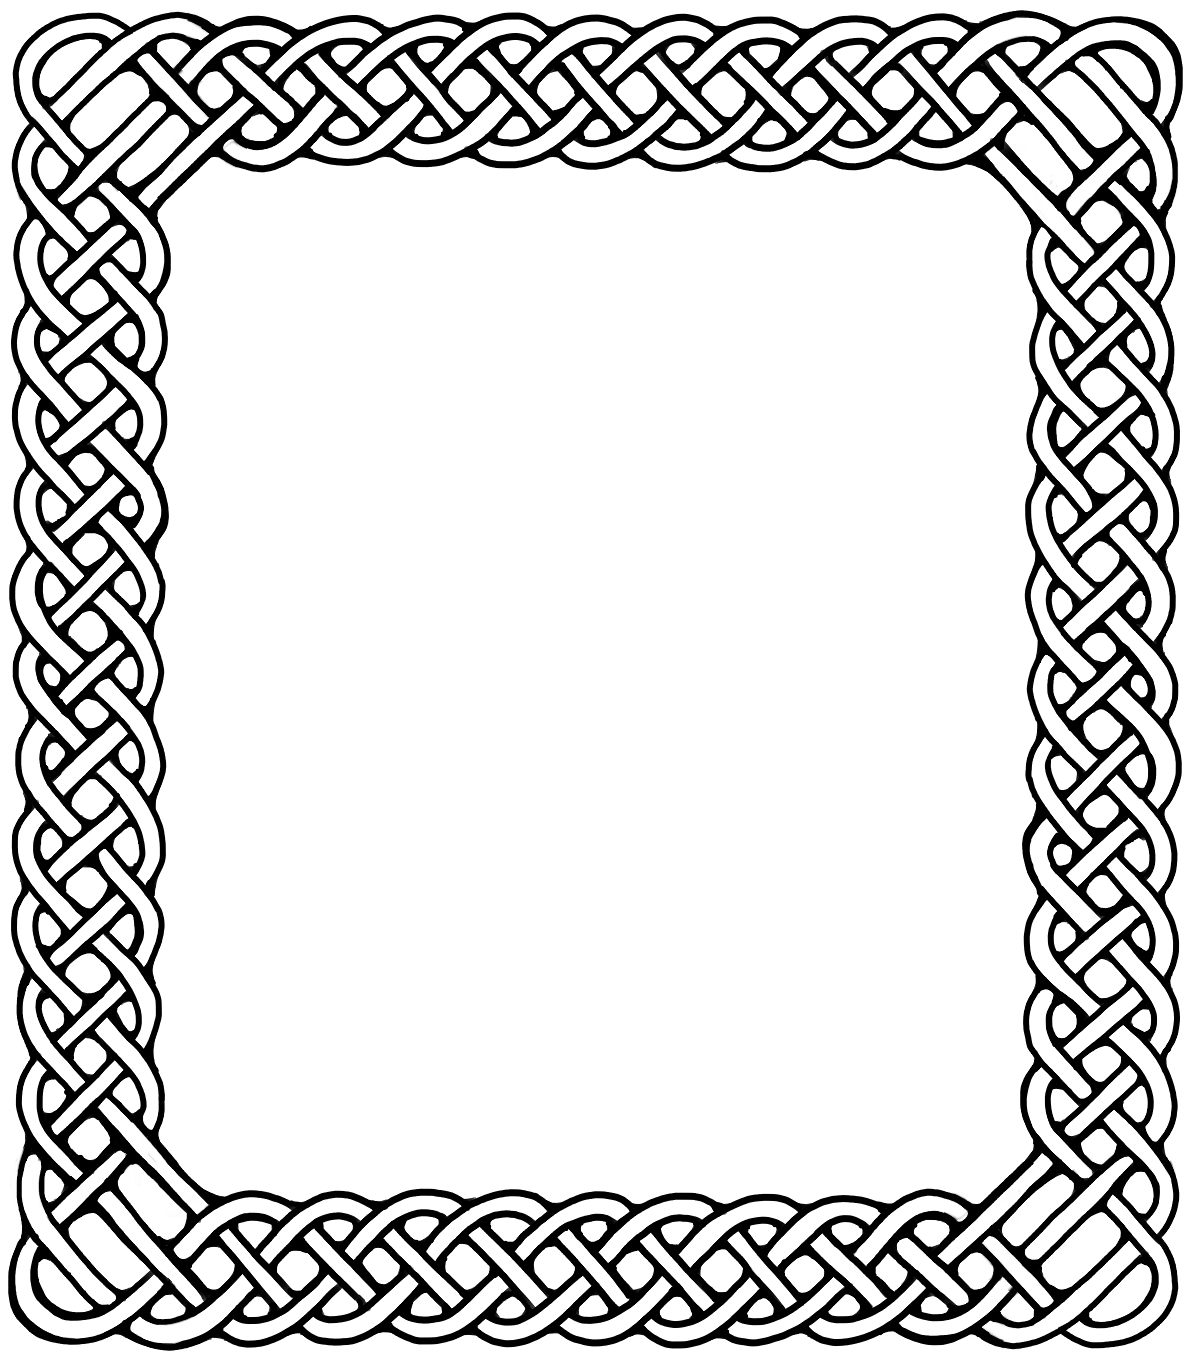 Celtic knot knotting border fantasy watkanjewel